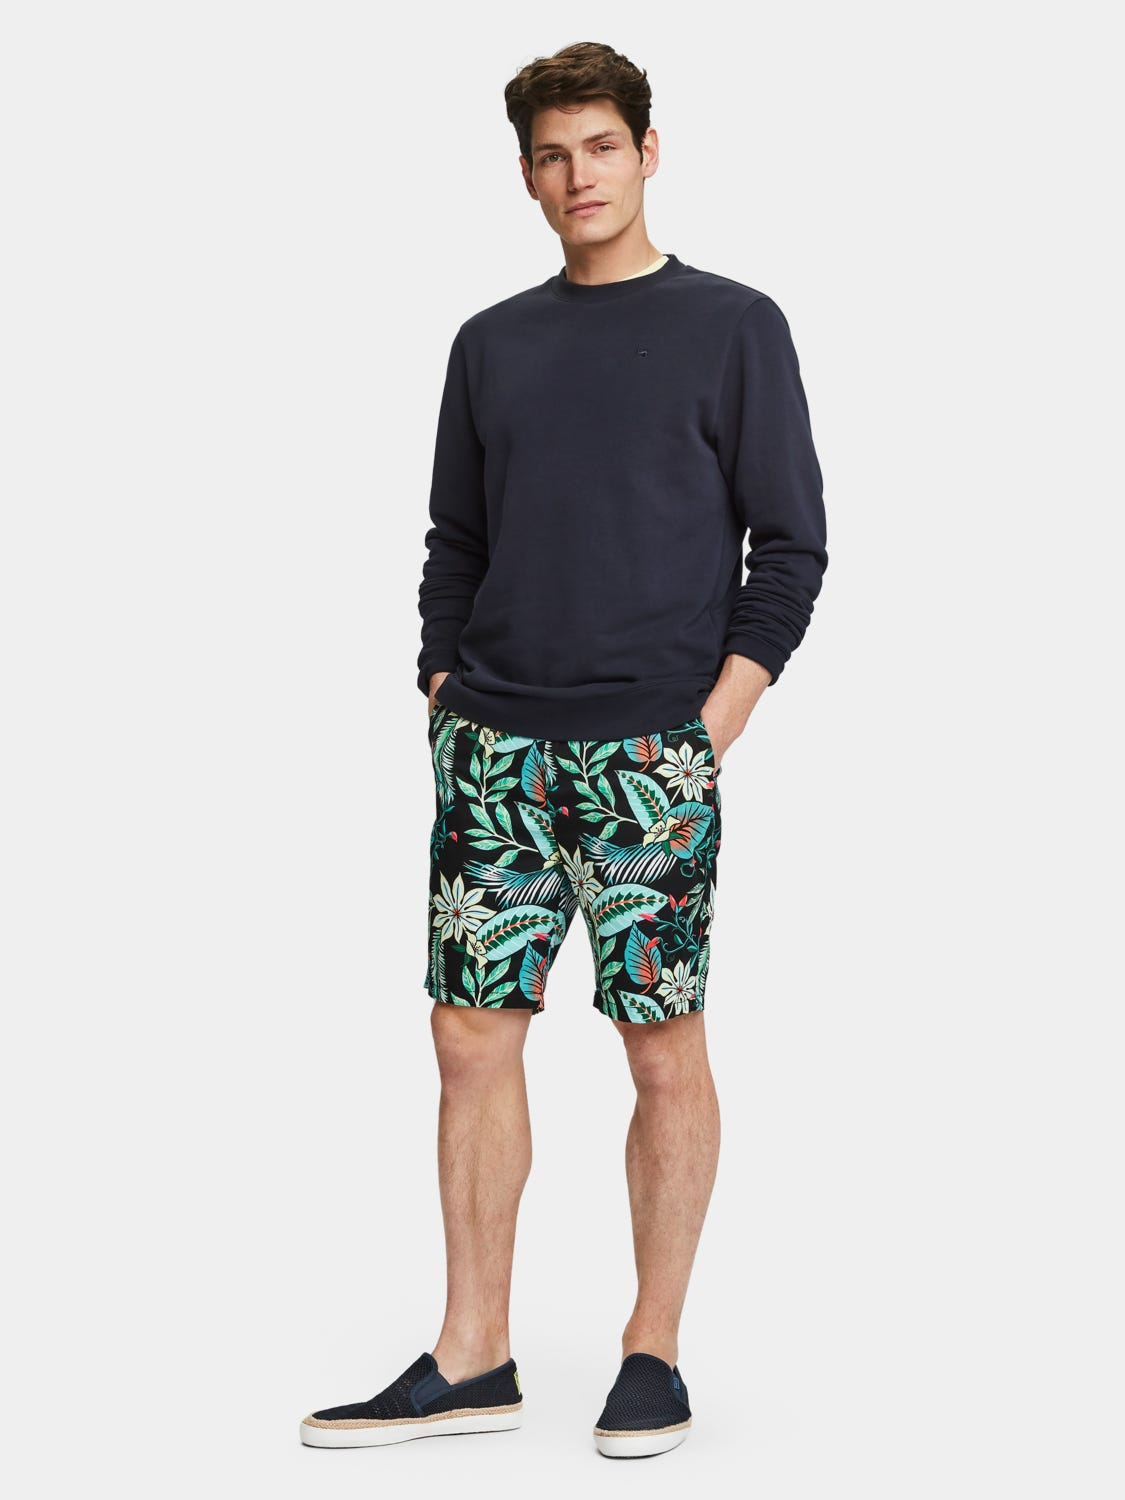 Scotch and Soda Mid Length Printed Chino Short - Combo 219